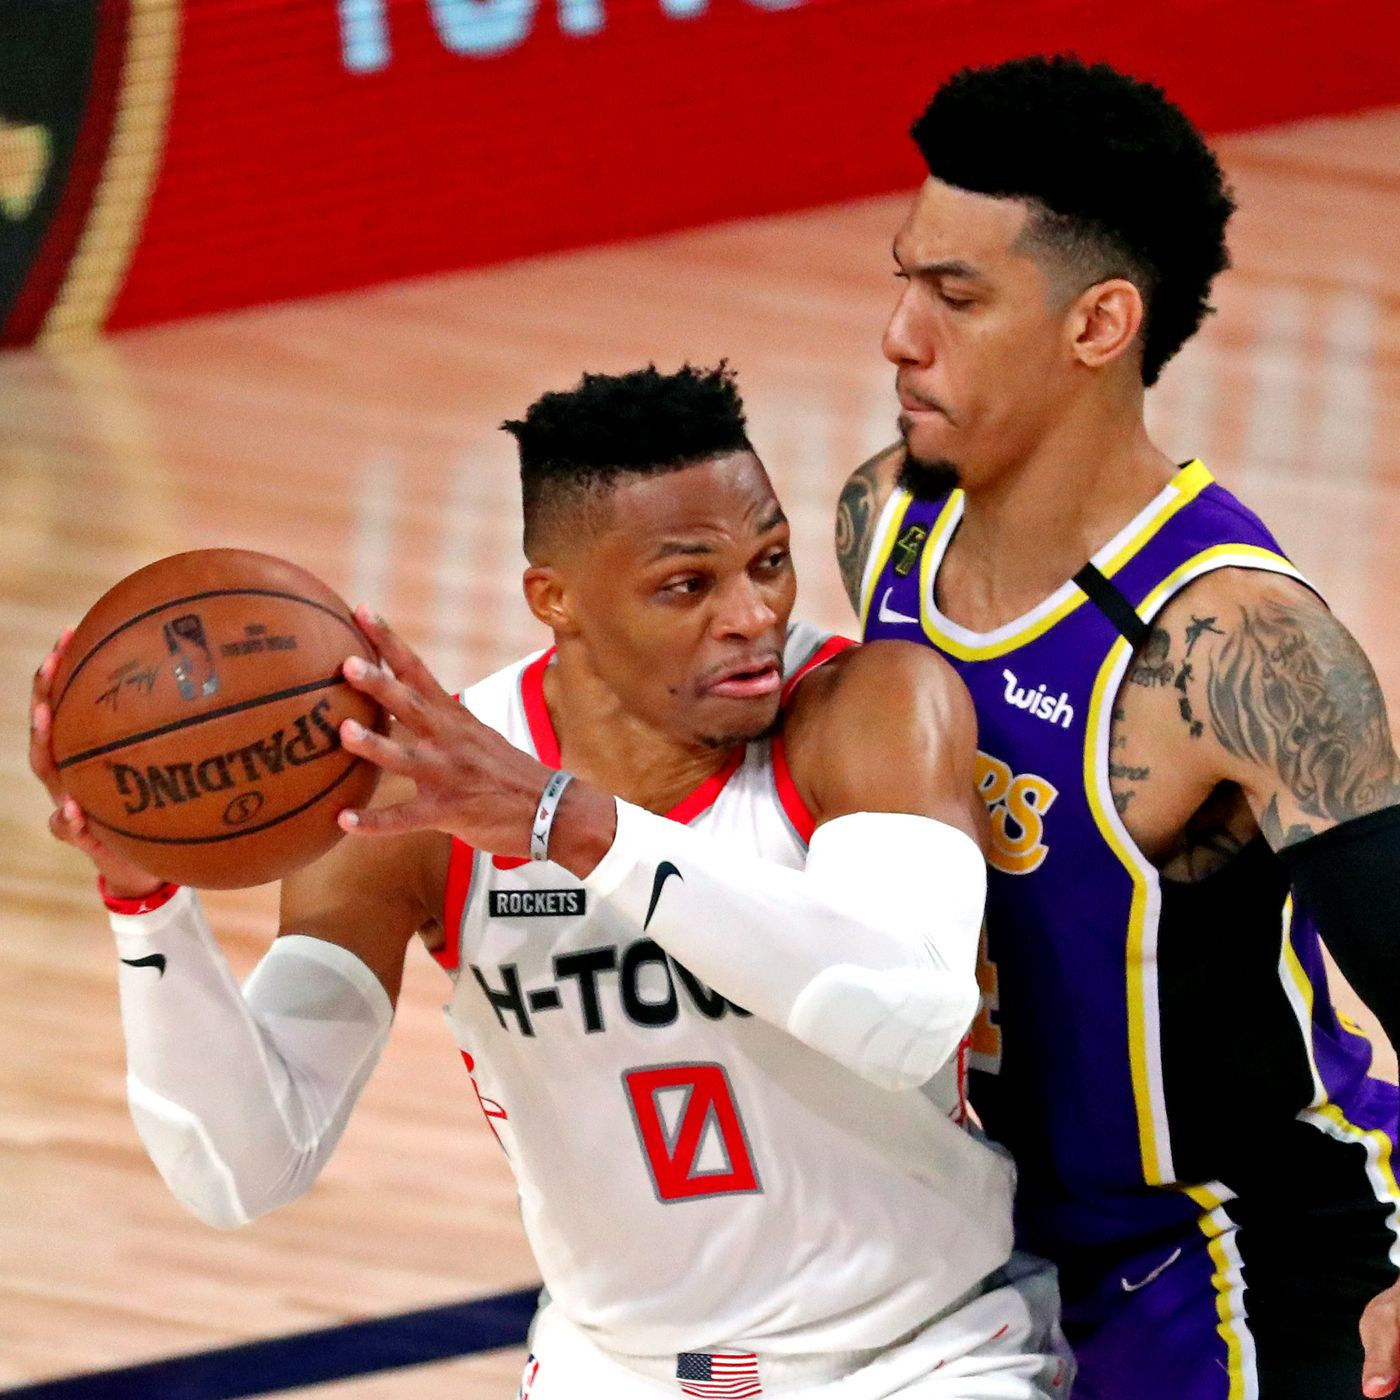 Houston Rockets Vs Los Angeles Lakers Game 3 Preview The Dream Shake